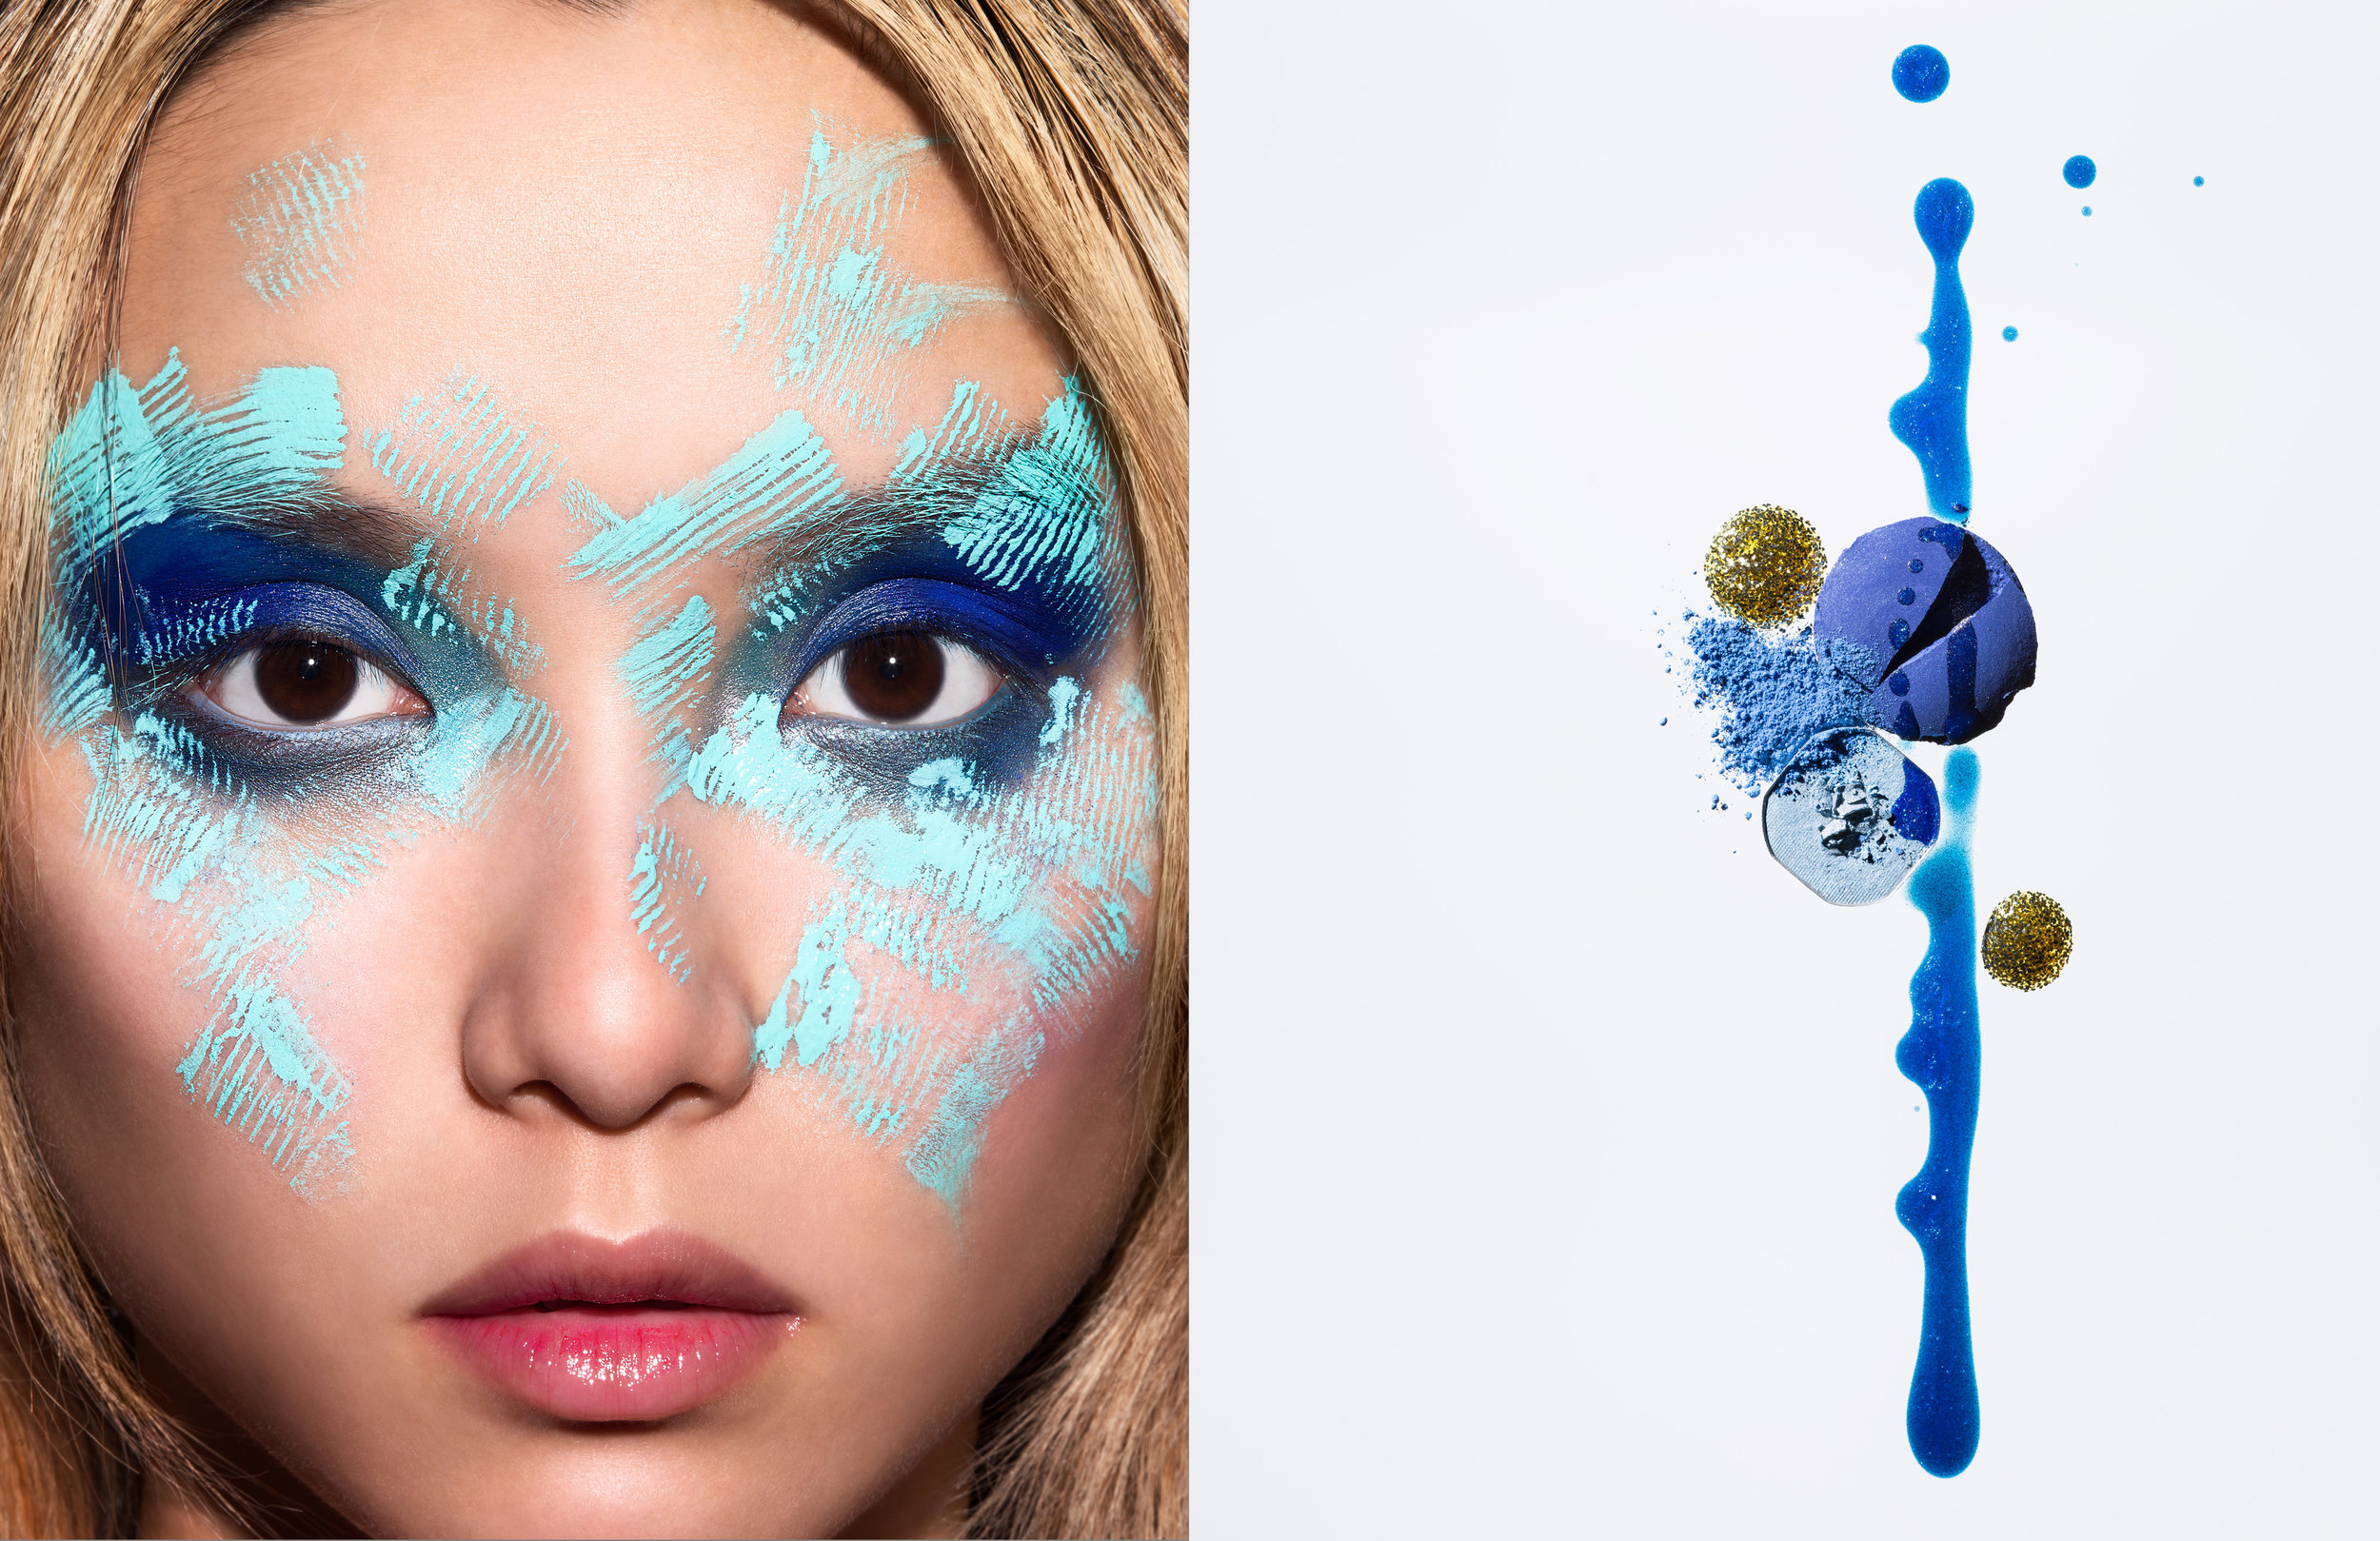 paris-vogue-cosmetics-blue-makeup-beauty-photographer-advertising-